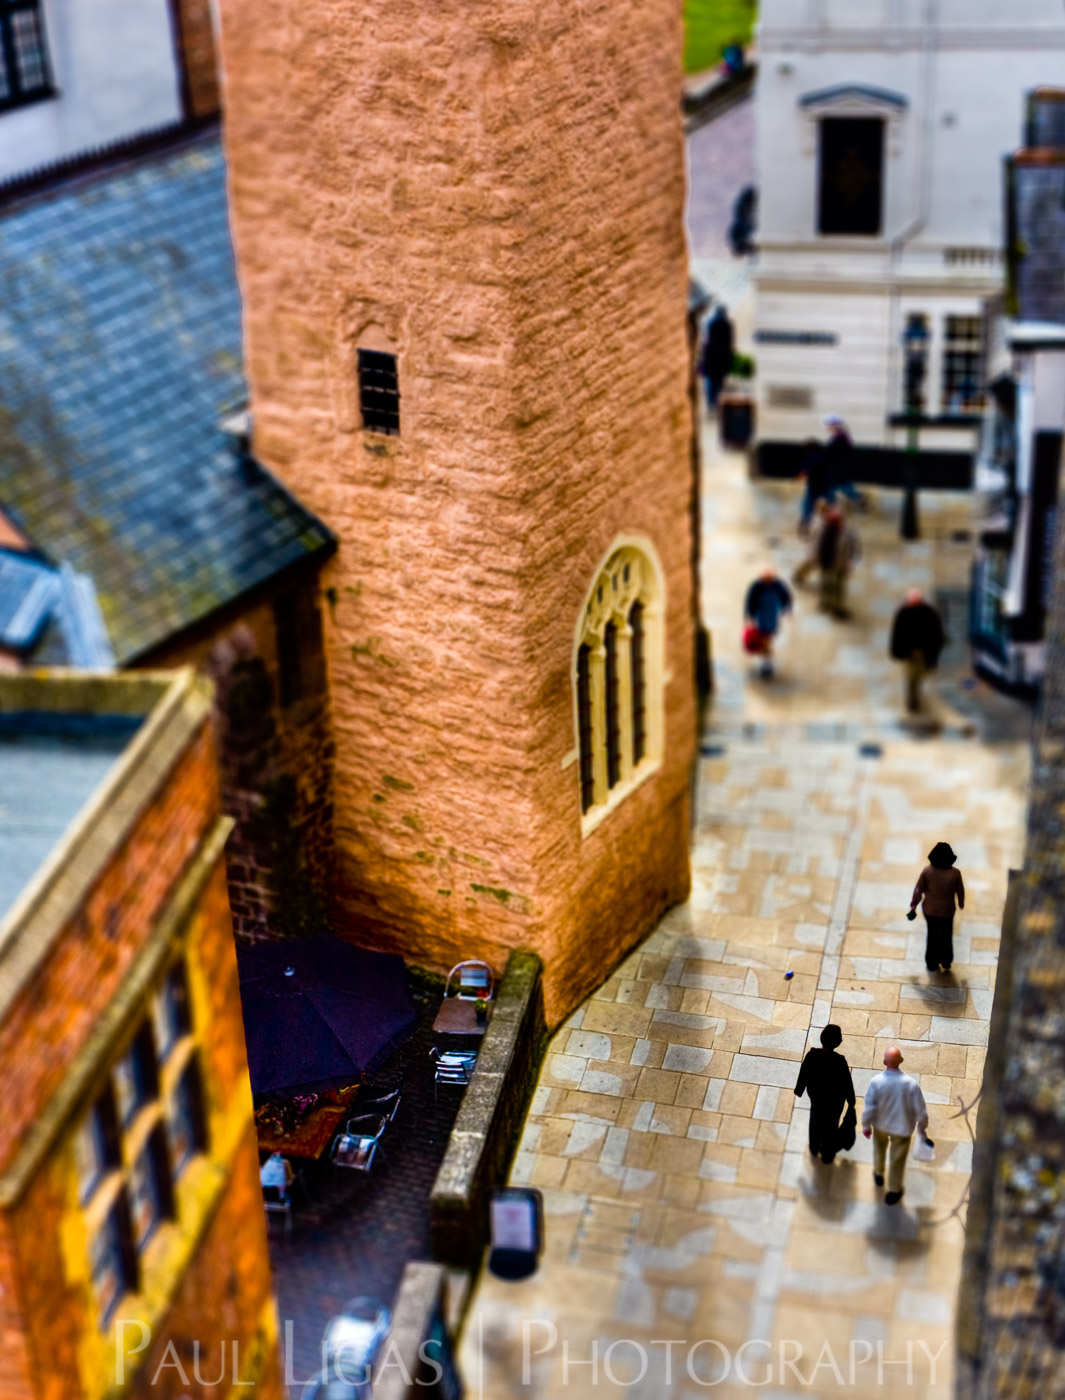 Exeter From Above, tilt shift photography cityscape street photographer herefordshire 4889